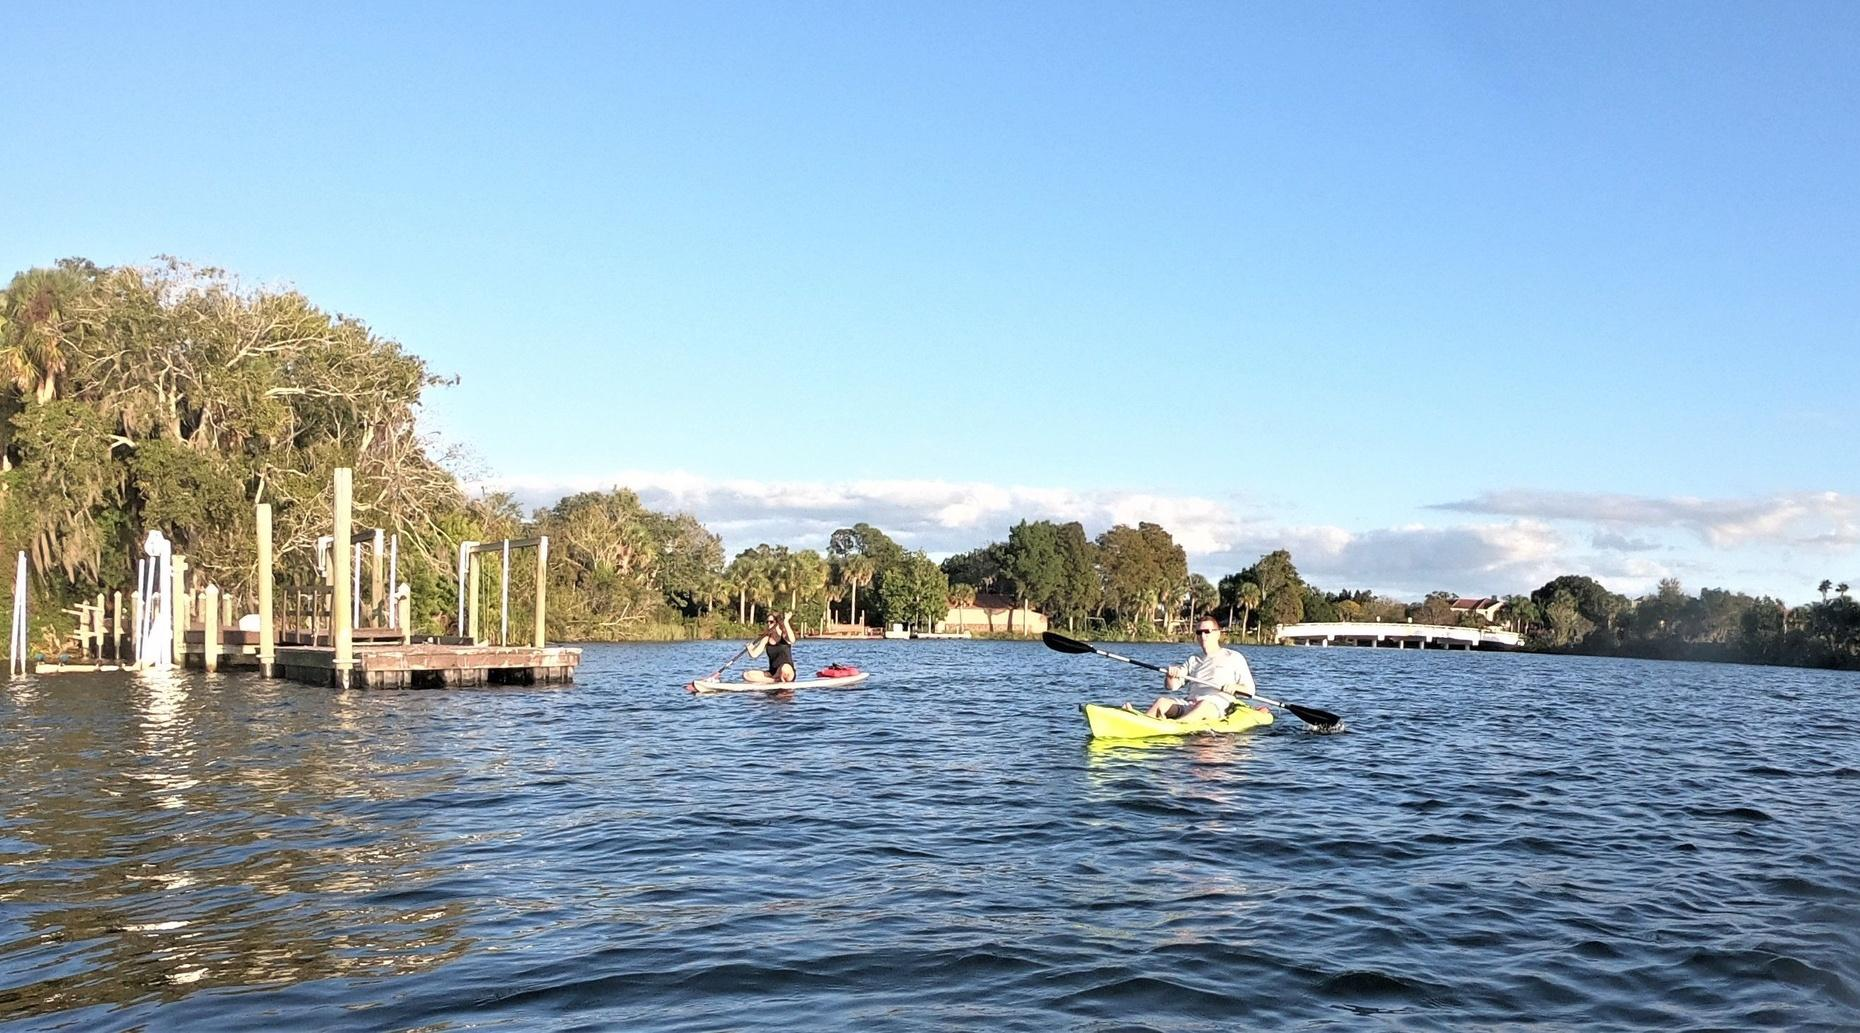 Full-Day Single Kayak Rental and Manatee Viewing in Crystal River